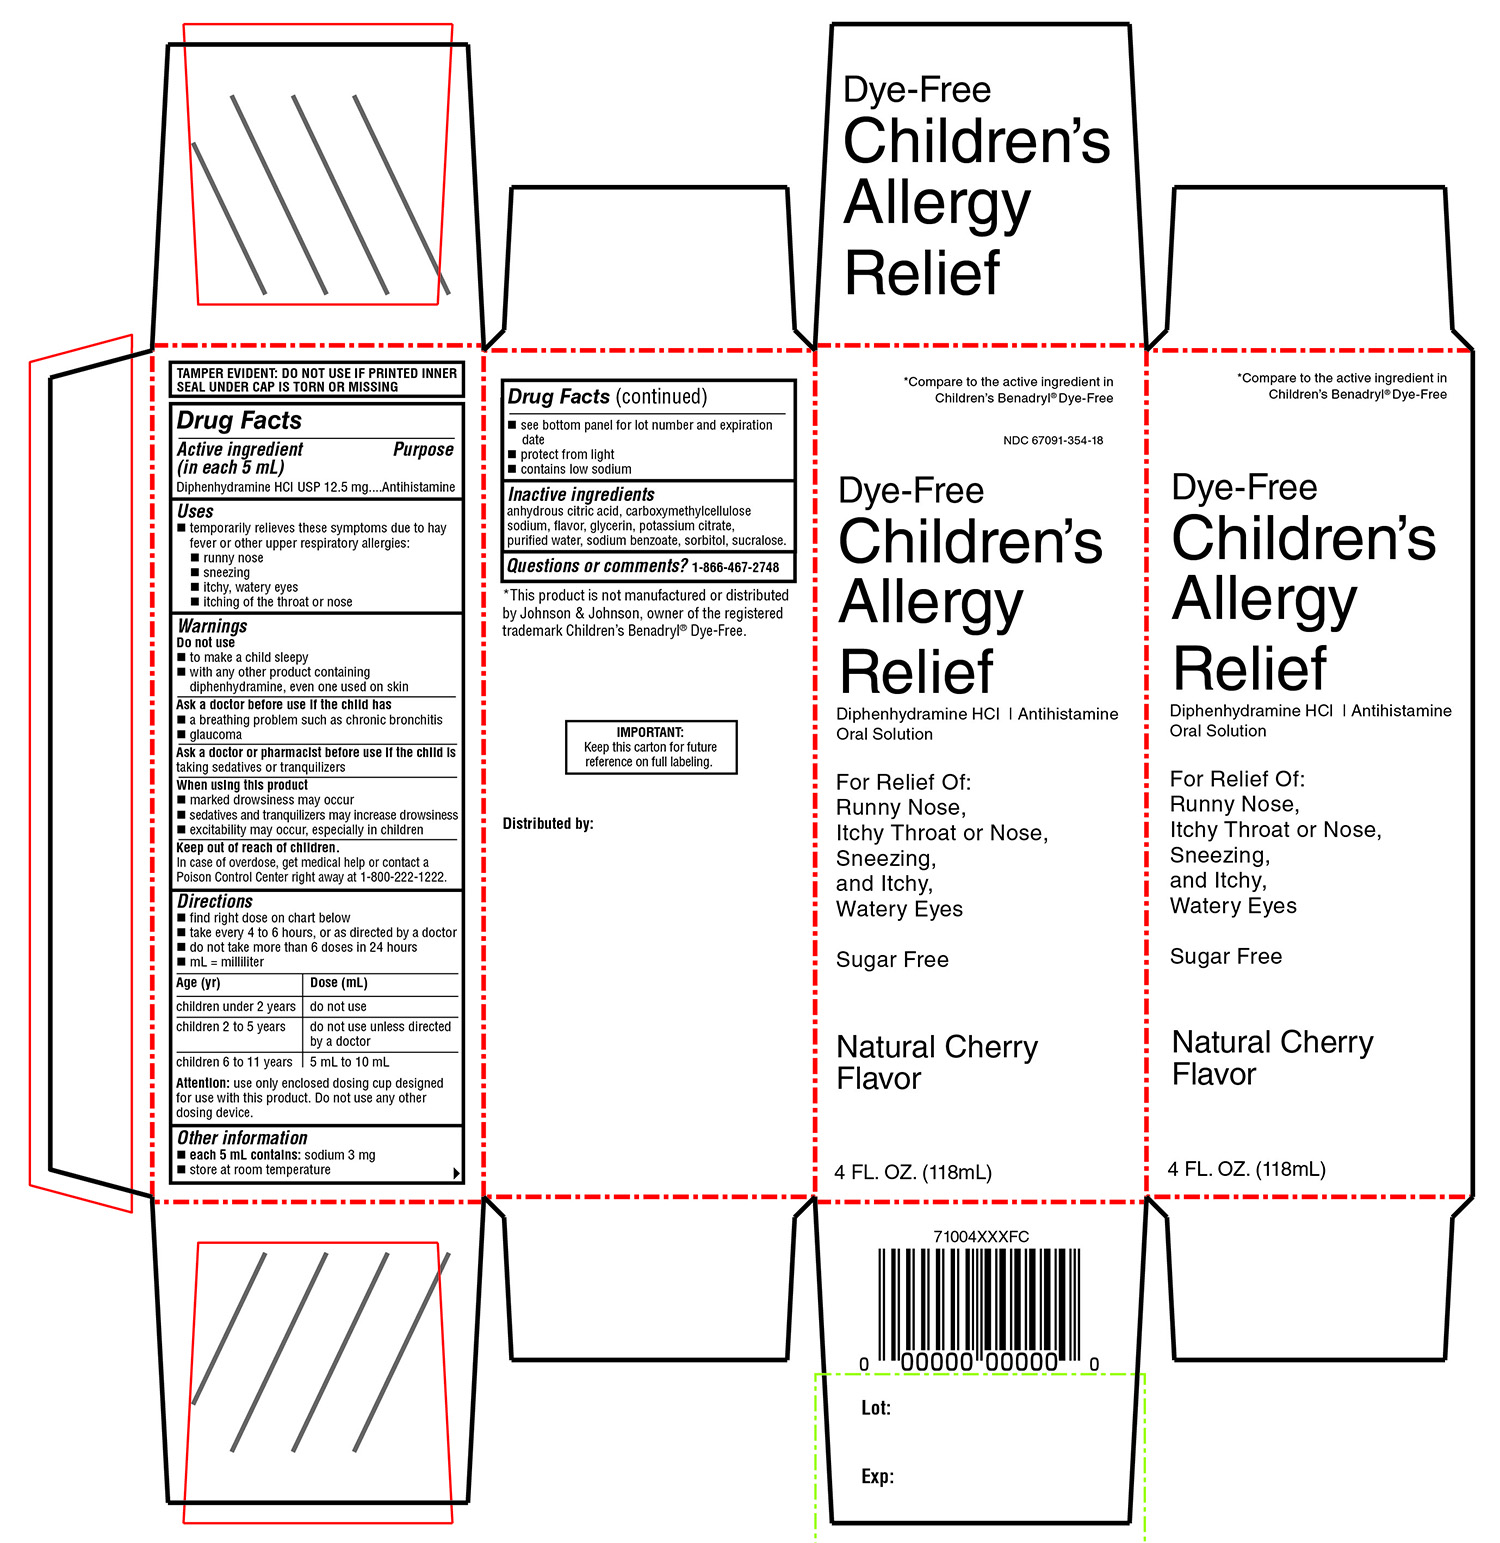 Winco Foods Childrens Allergy Relief Dye Free Diphenhydramine Hydrochloride Solution